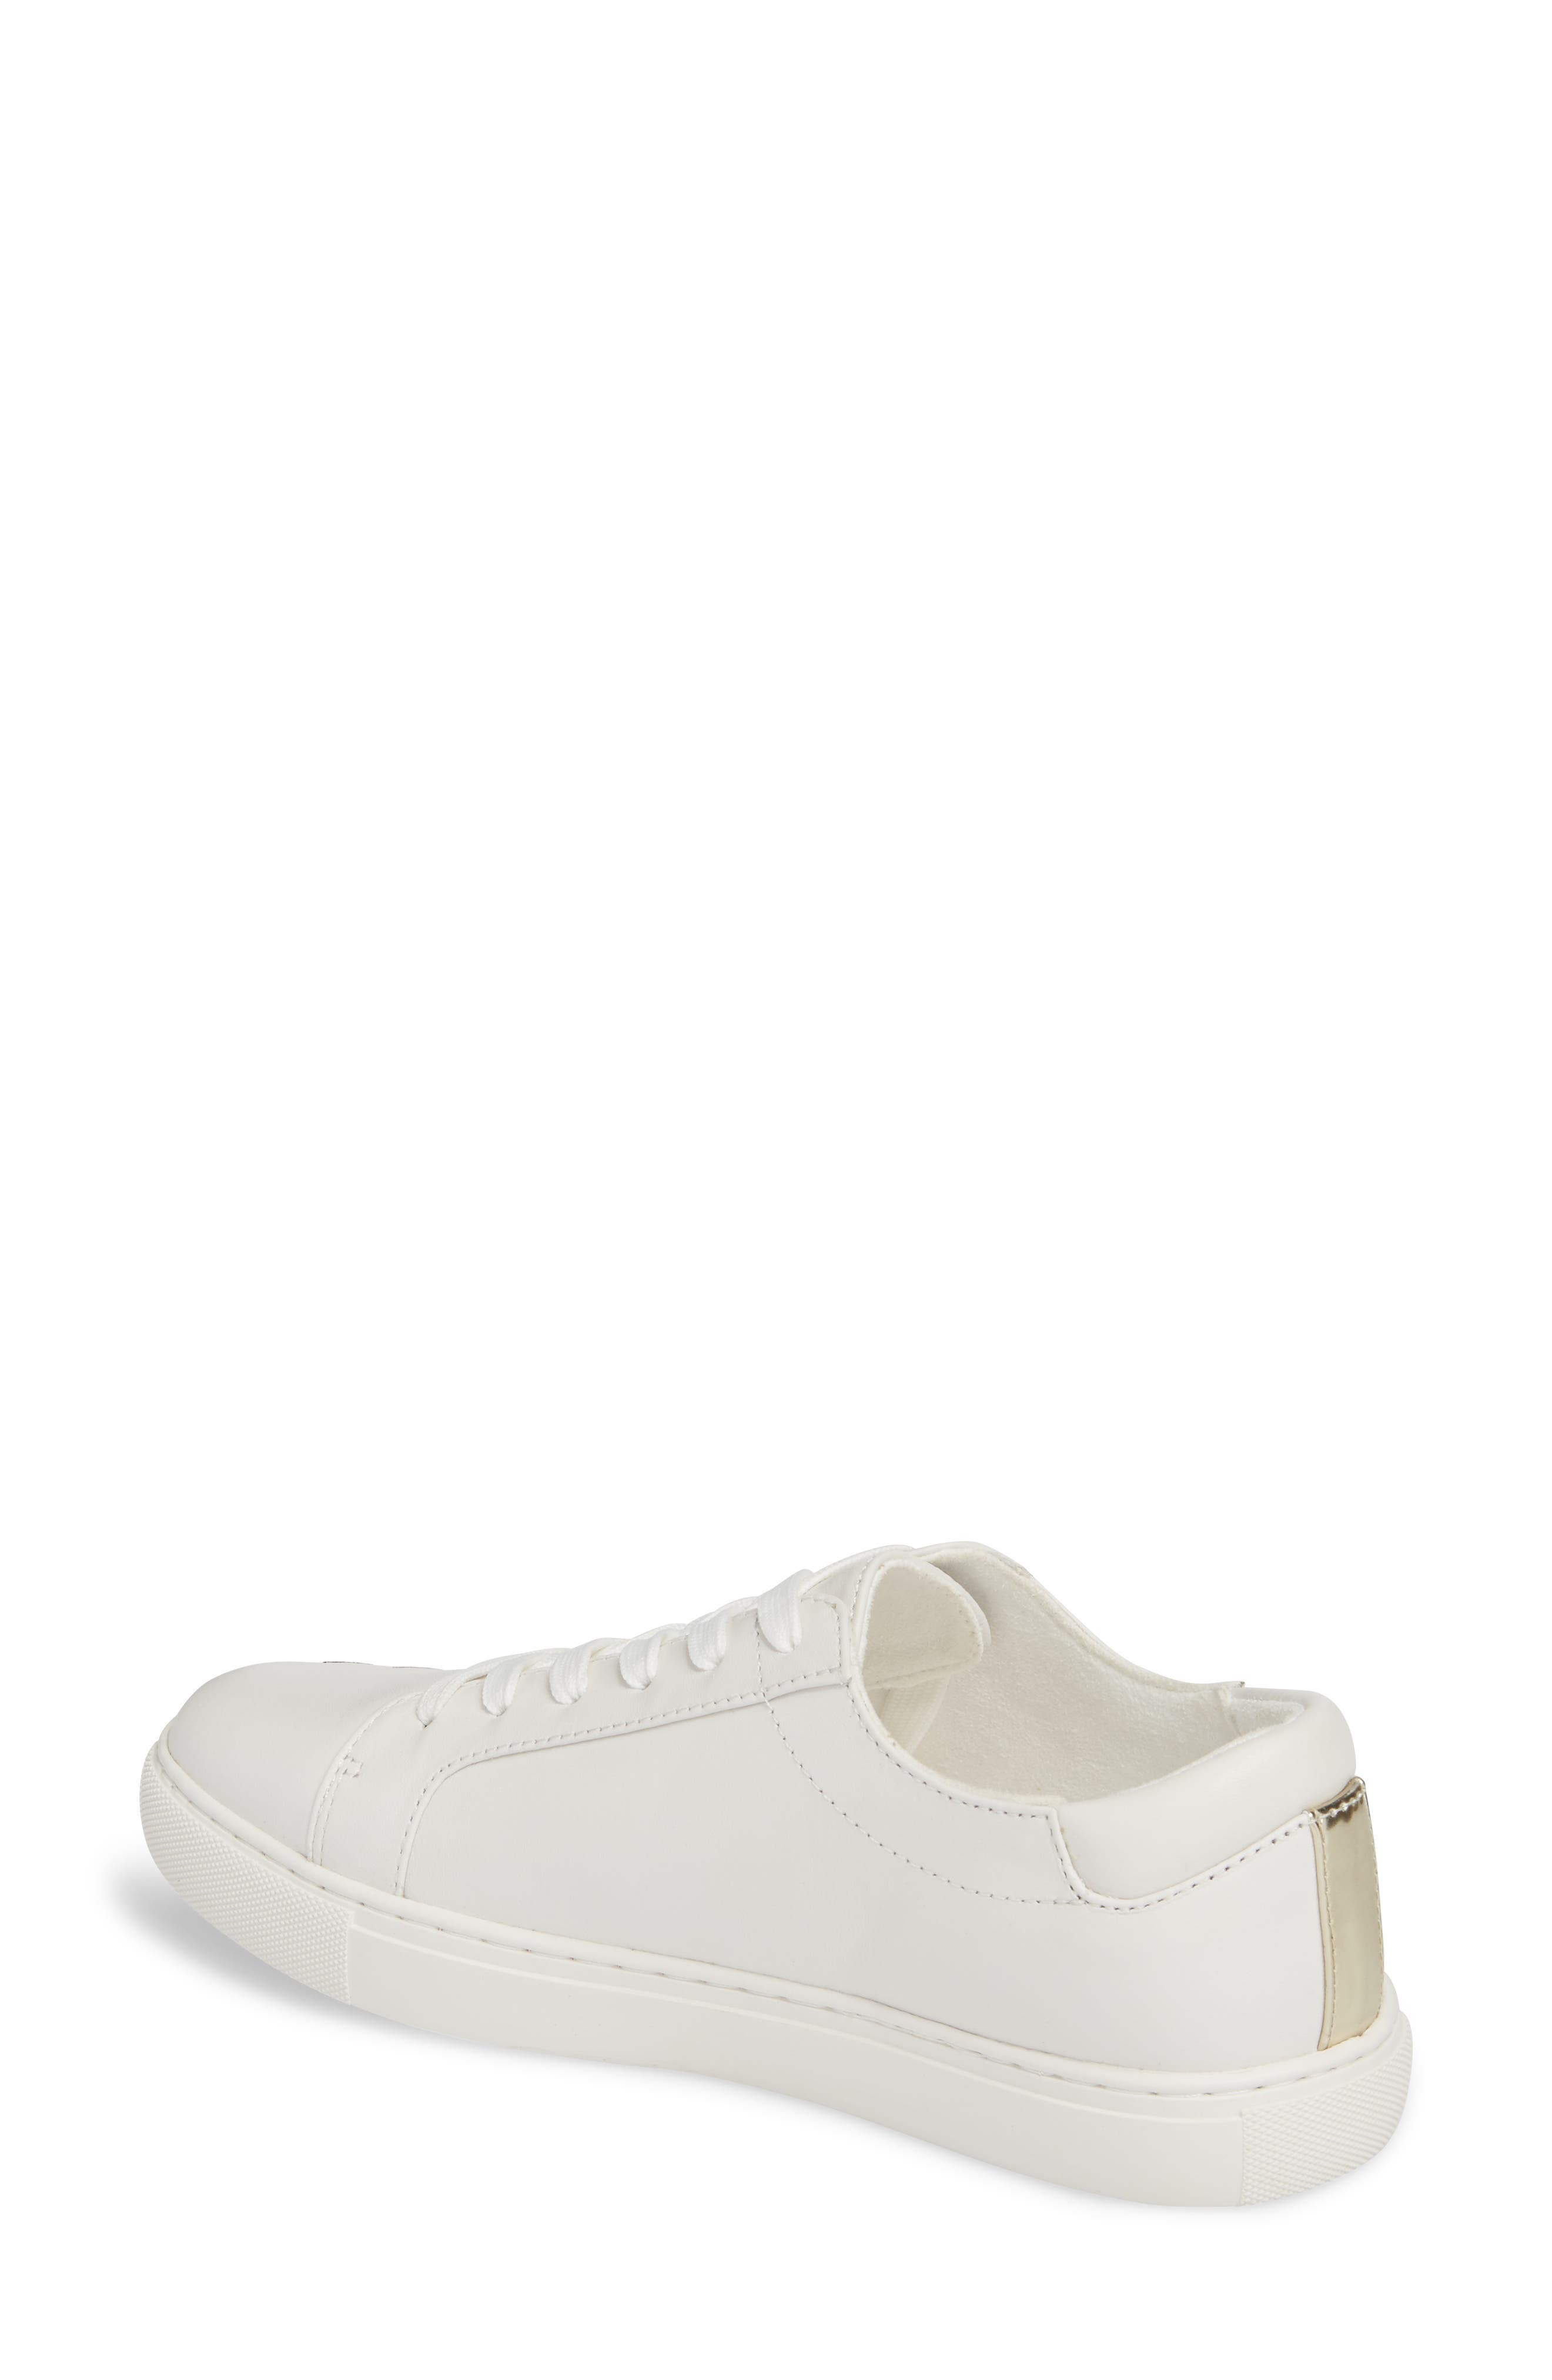 Kam Blossom Embroidered Sneaker,                             Alternate thumbnail 2, color,                             White Leather